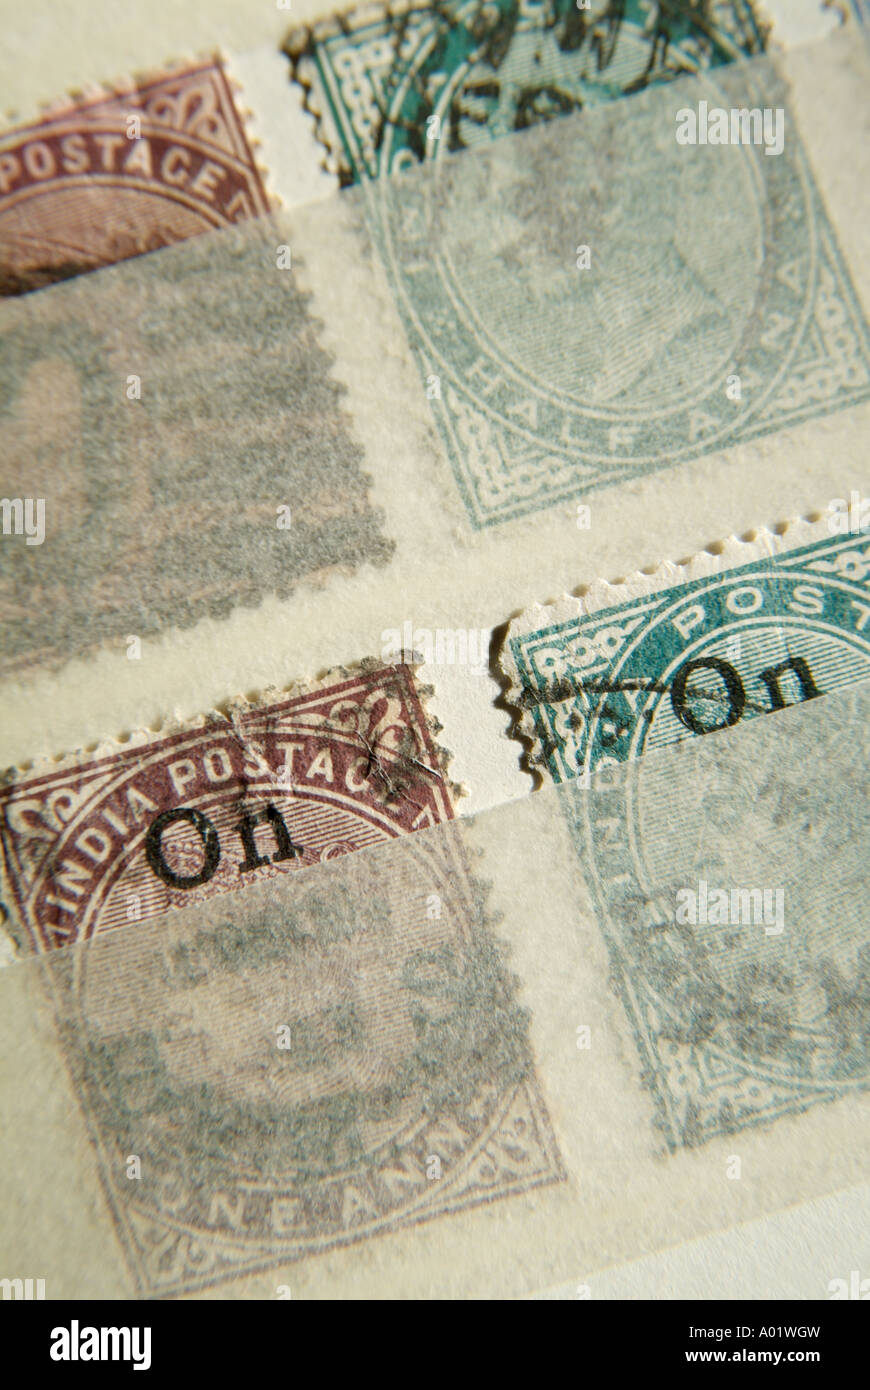 Old Indian British Colonial postage stamps - Stock Image